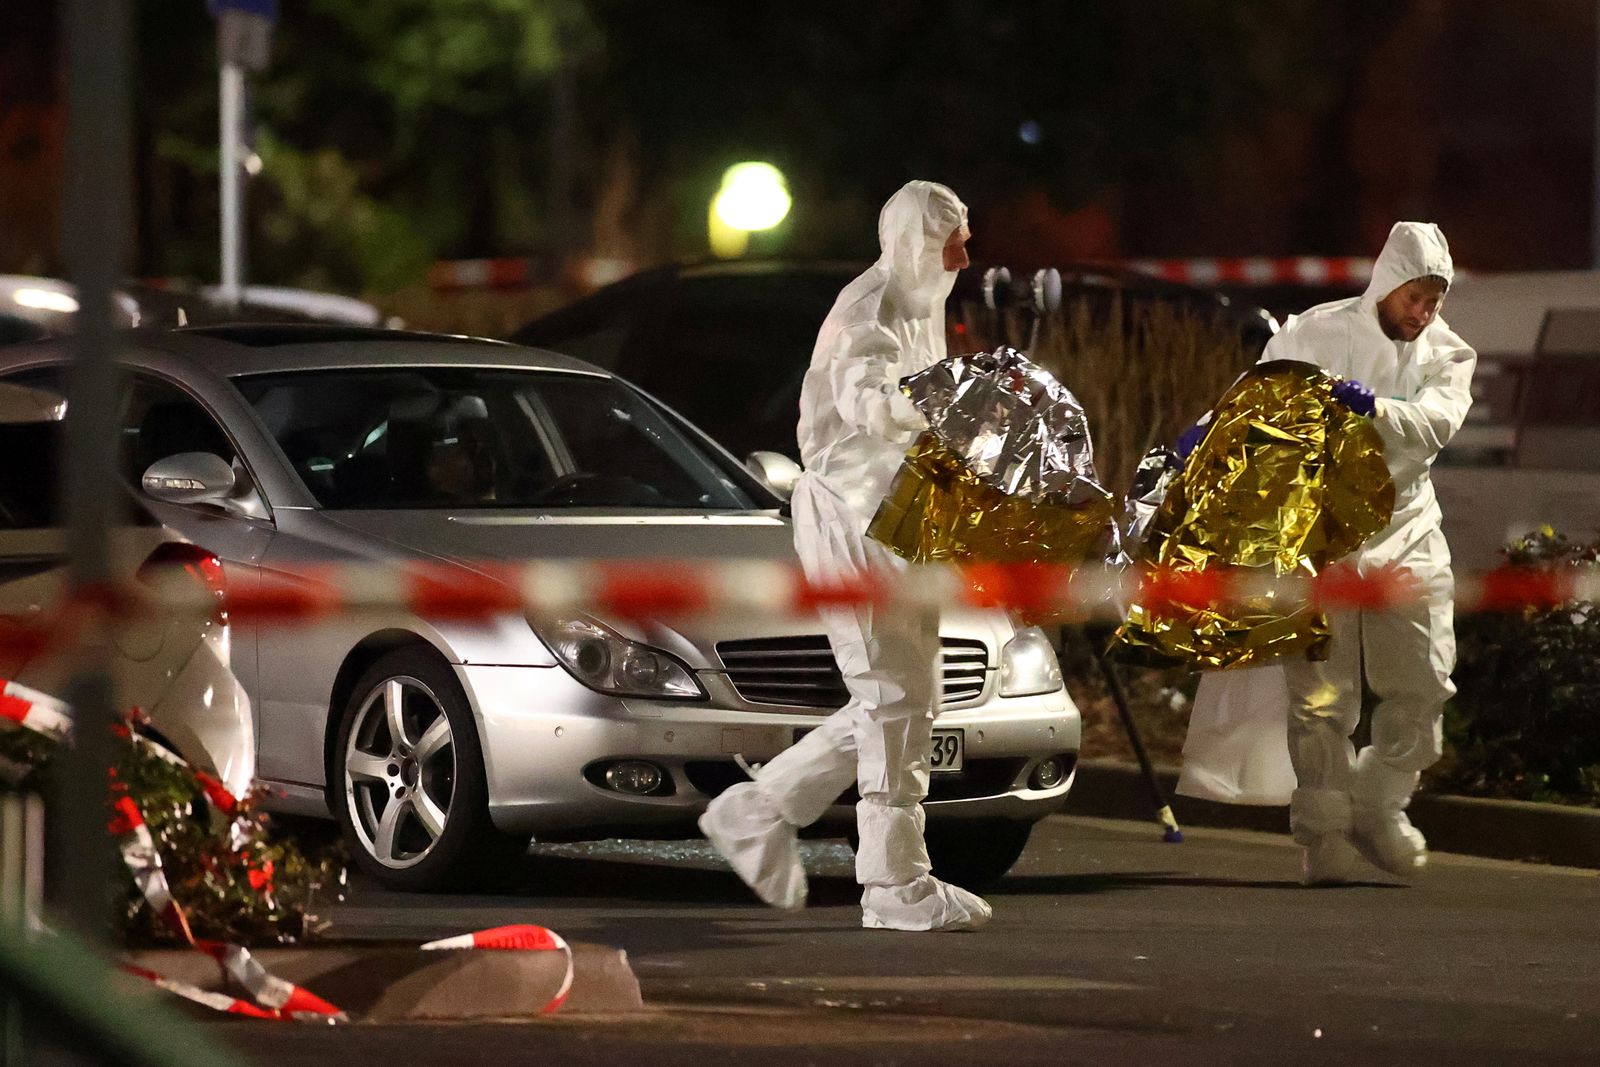 A body is seen in a damaged car as forensic experts work after a shooting in Hanau near Frankfurt